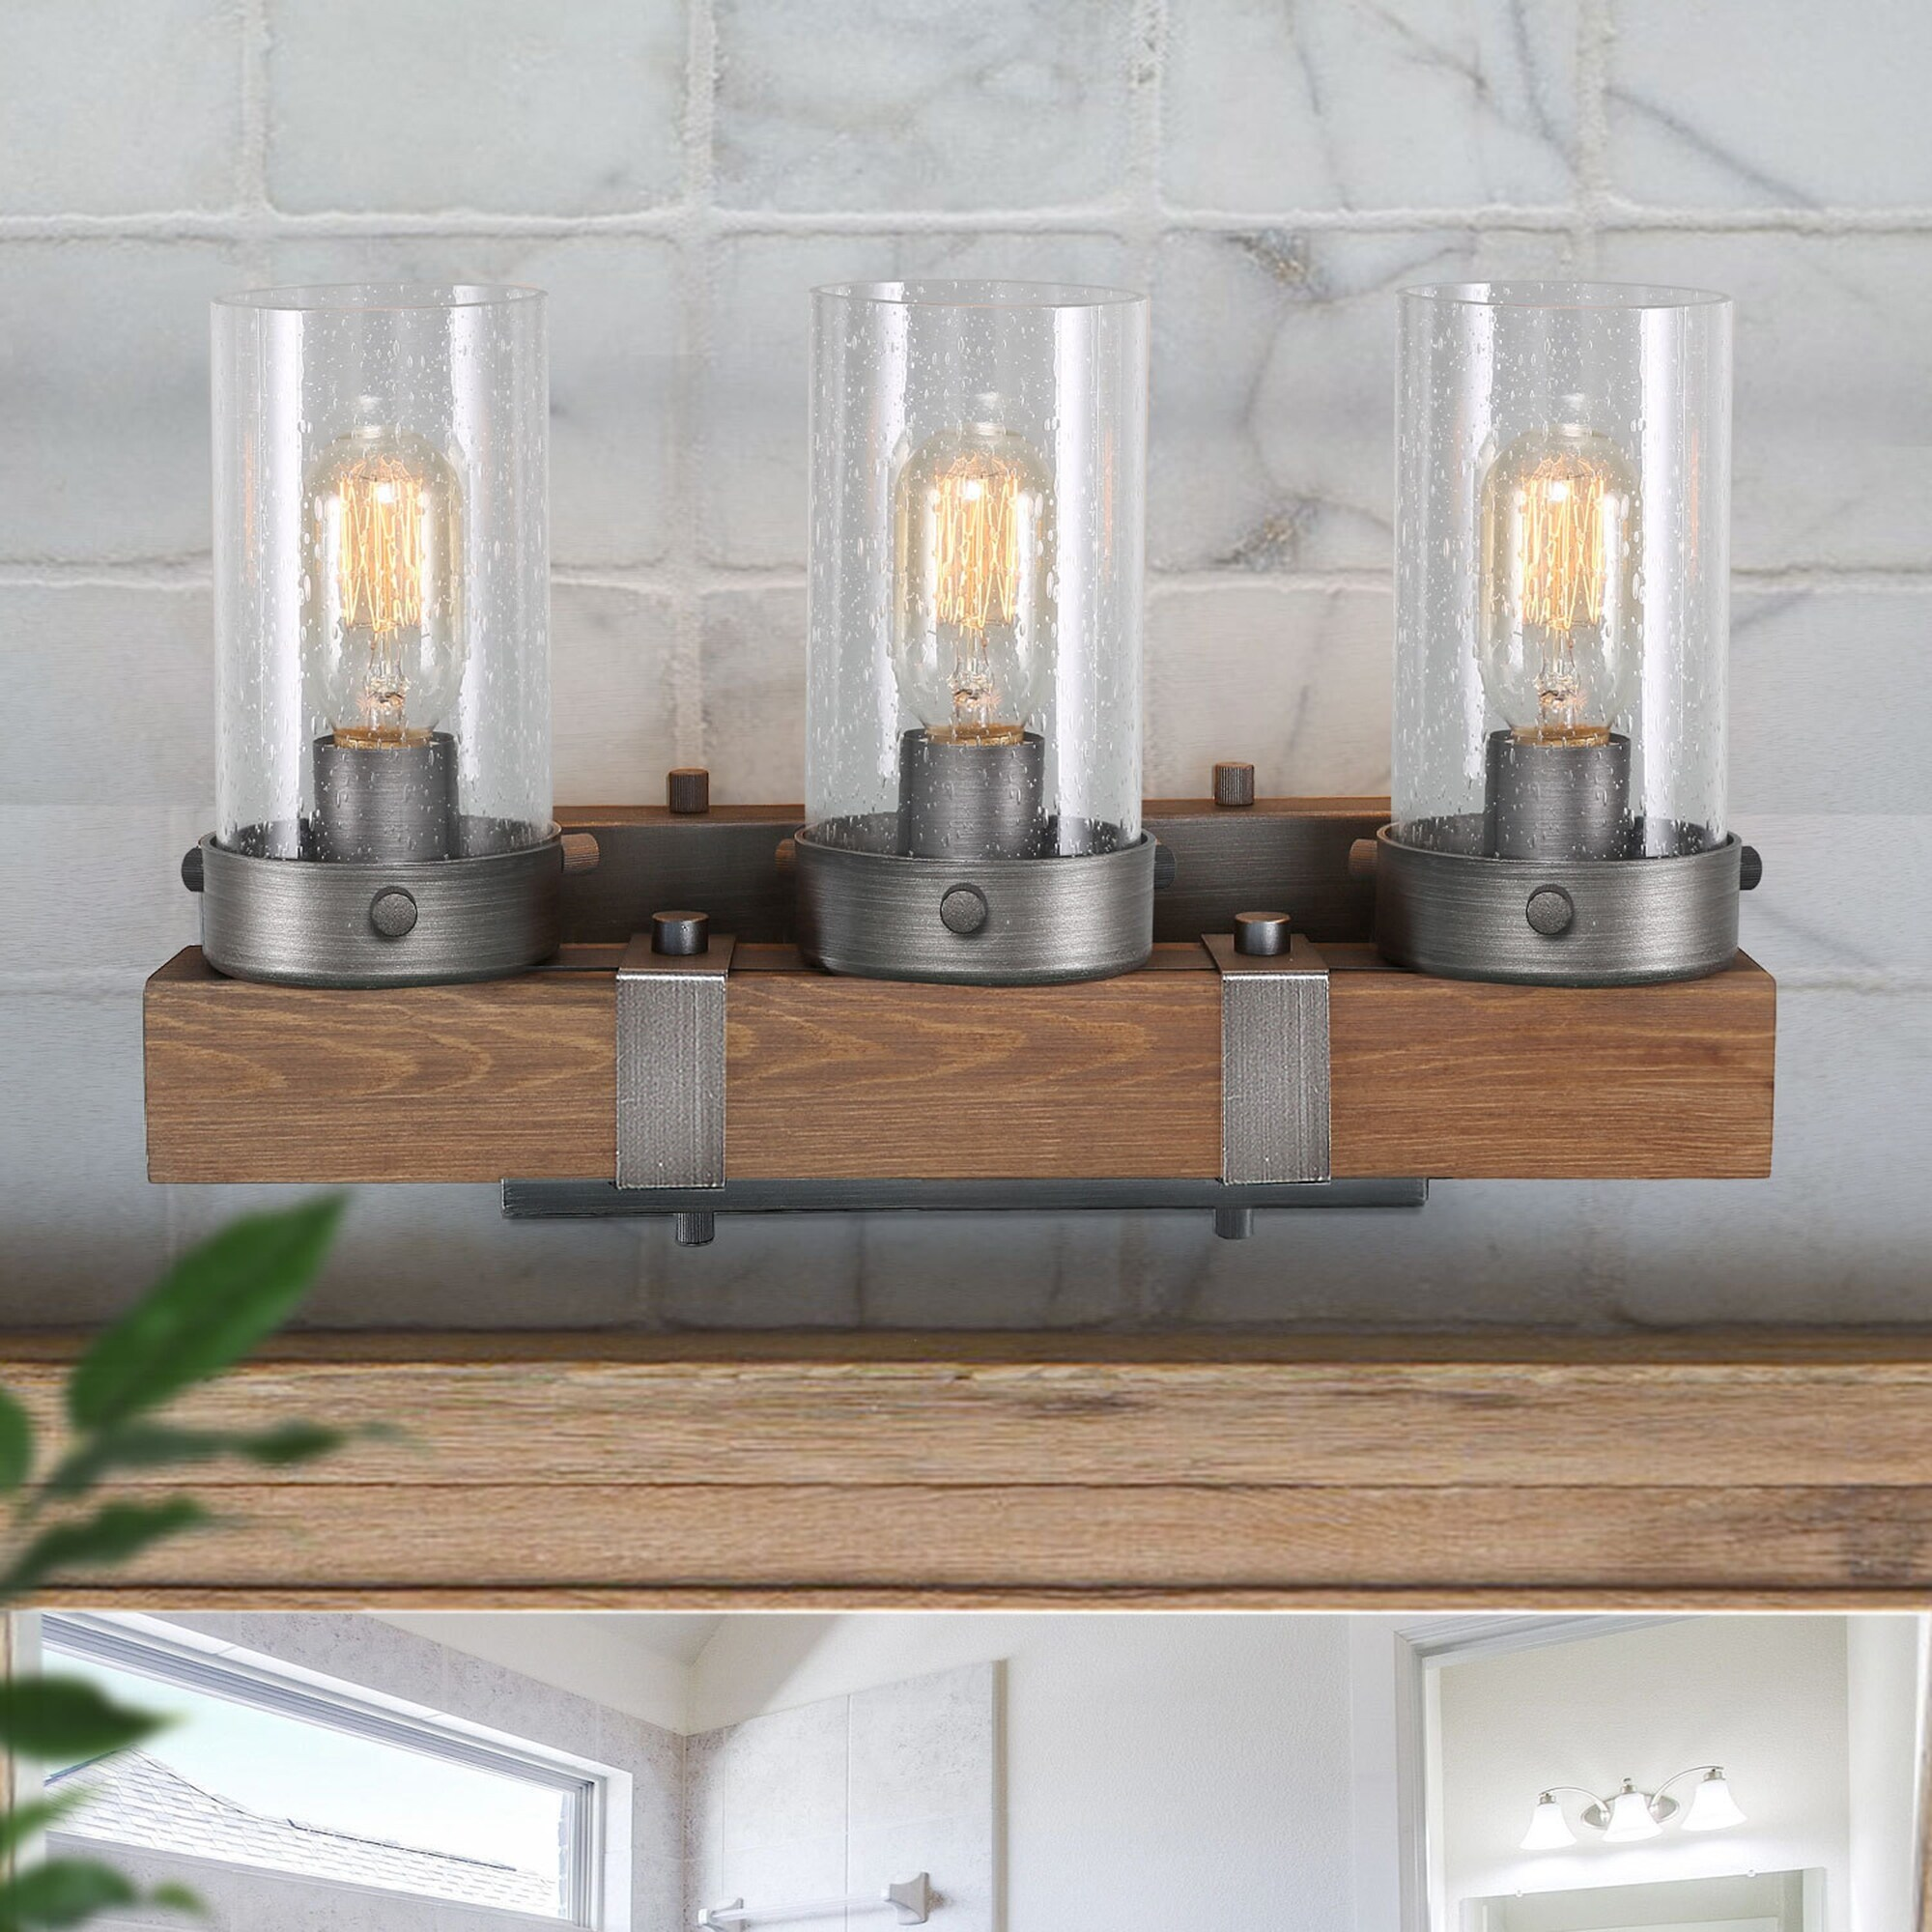 Lnc 3 Light Rustic Wall Sconces Wood Bathroom Vanity Lights L18 1 X W5 9 X H10 6 Overstock 25454829